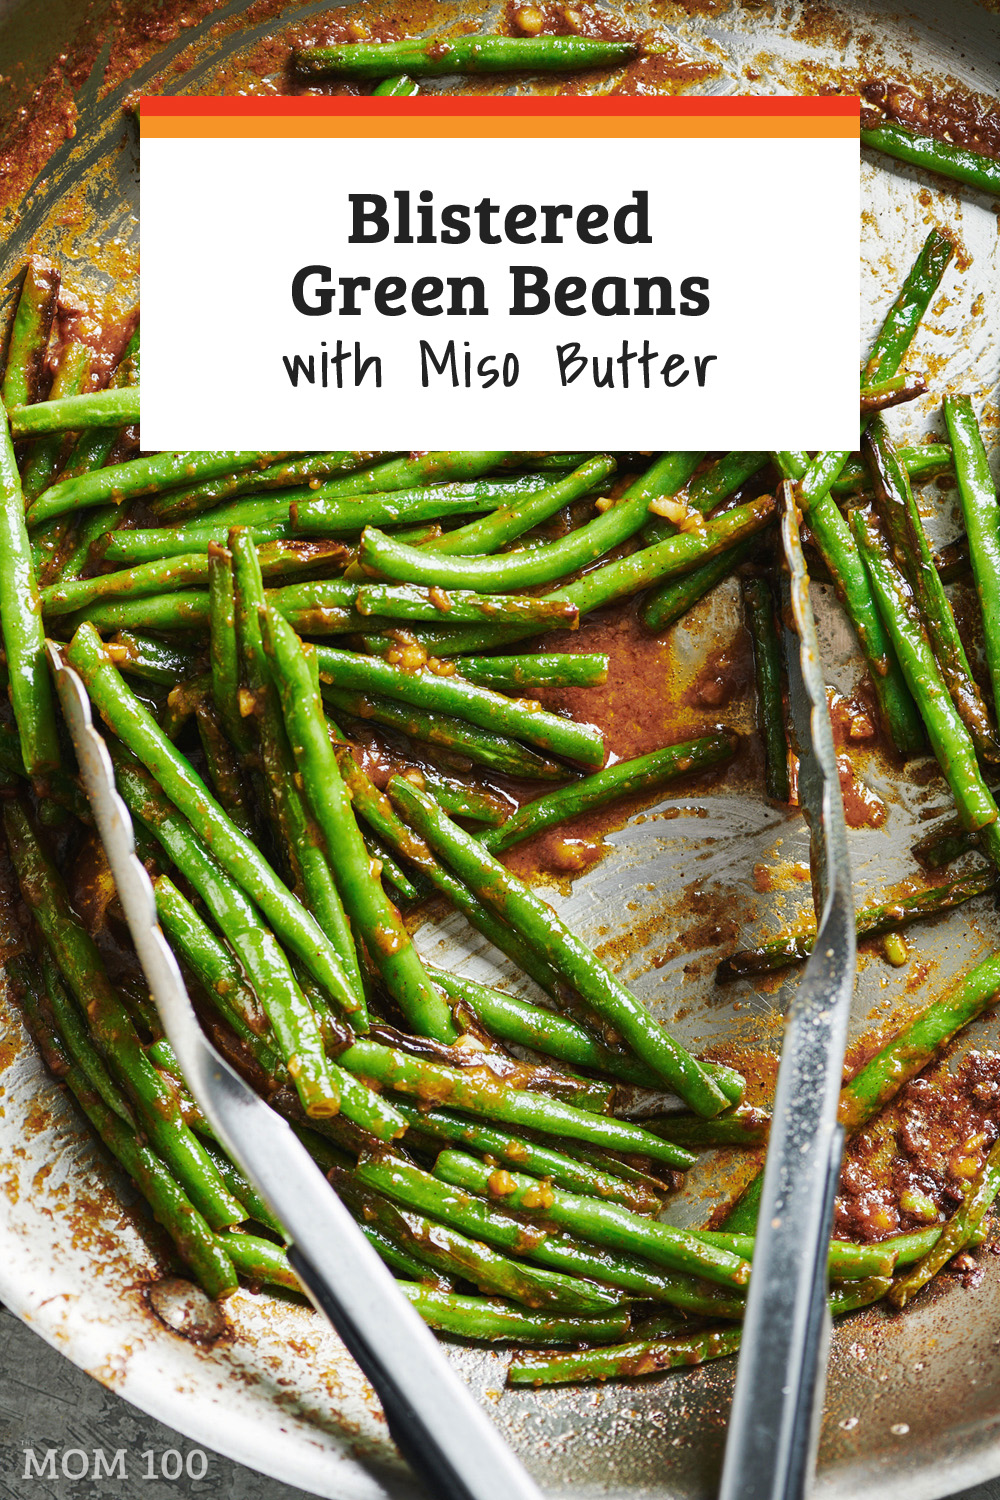 Blistered Green Beans with Miso Butter: A simple miso-infused butter turns a pile of fresh green beans into an umami bomb.